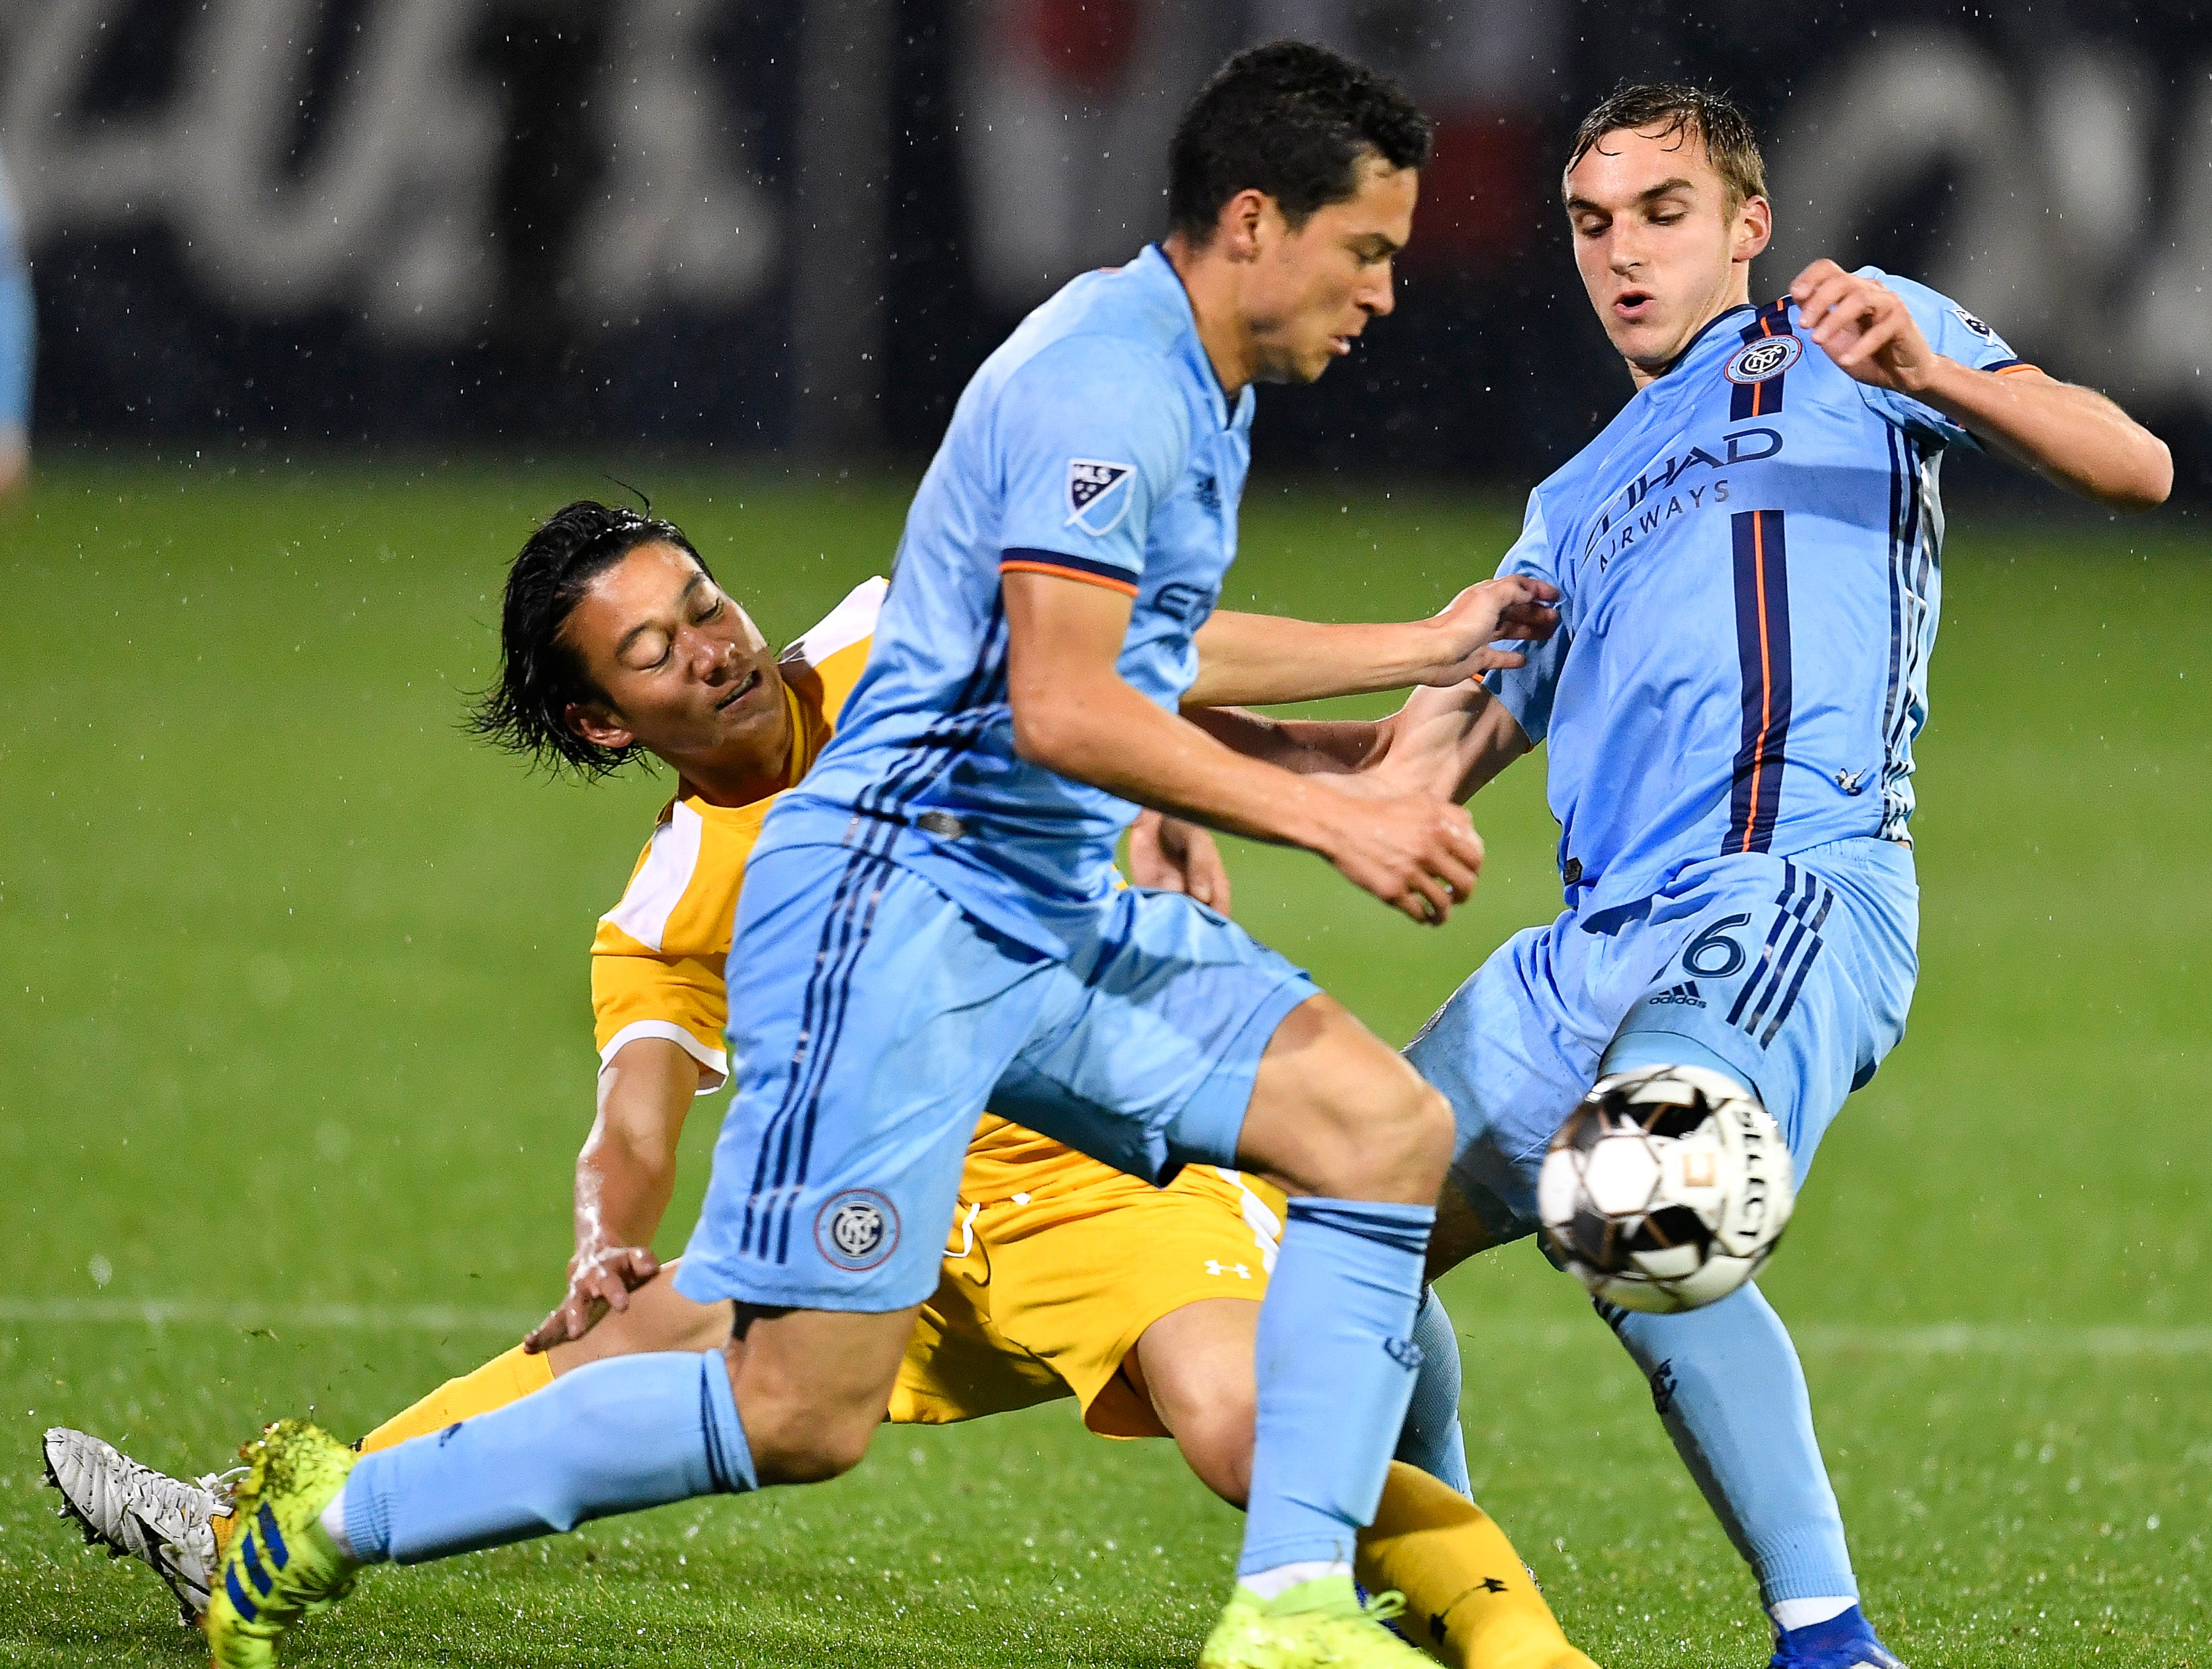 Nashville SC Genki Miyachi gets tripped up by New York City FC midfielder James Sands (16) as midfielder Thomas McNamara (15) races up the field during the second half at First Tennessee Park Friday, Feb. 22, 2019 in Nashville, Tenn.